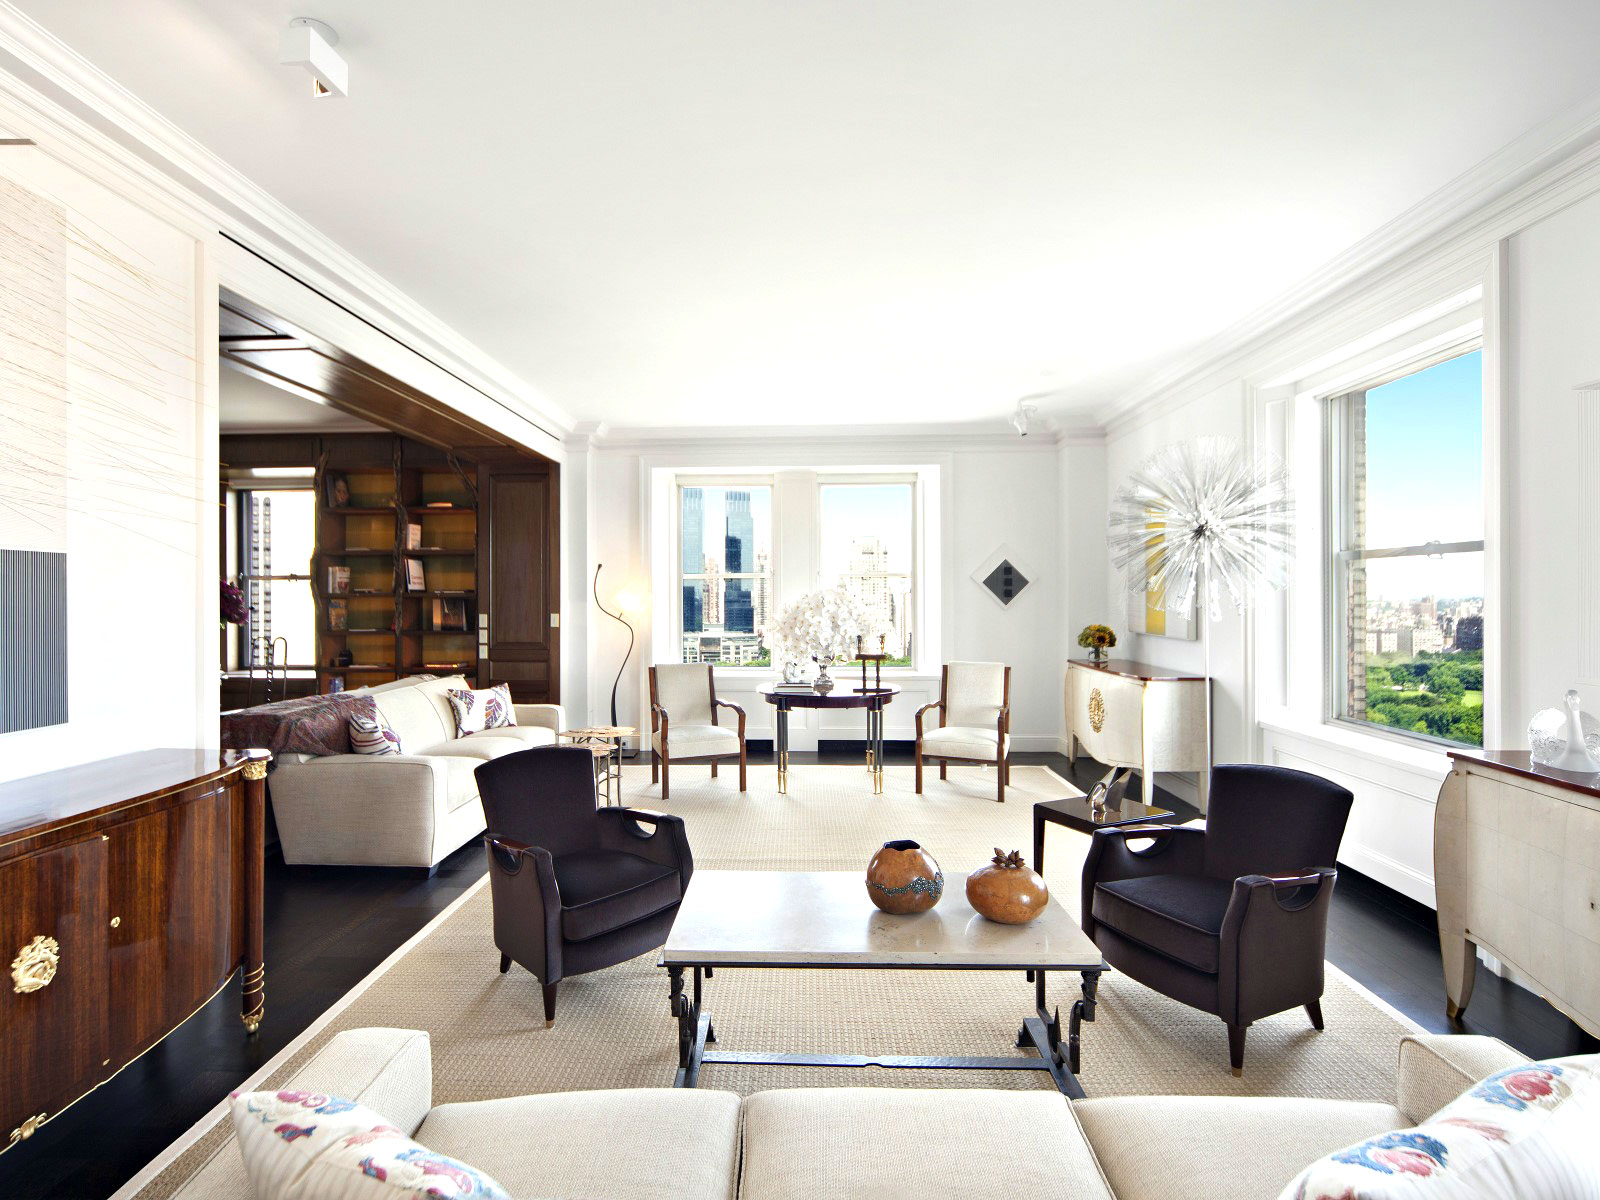 $70 MILLION DOLLAR APARTMENT IN NYC - SEE THIS HOUSE